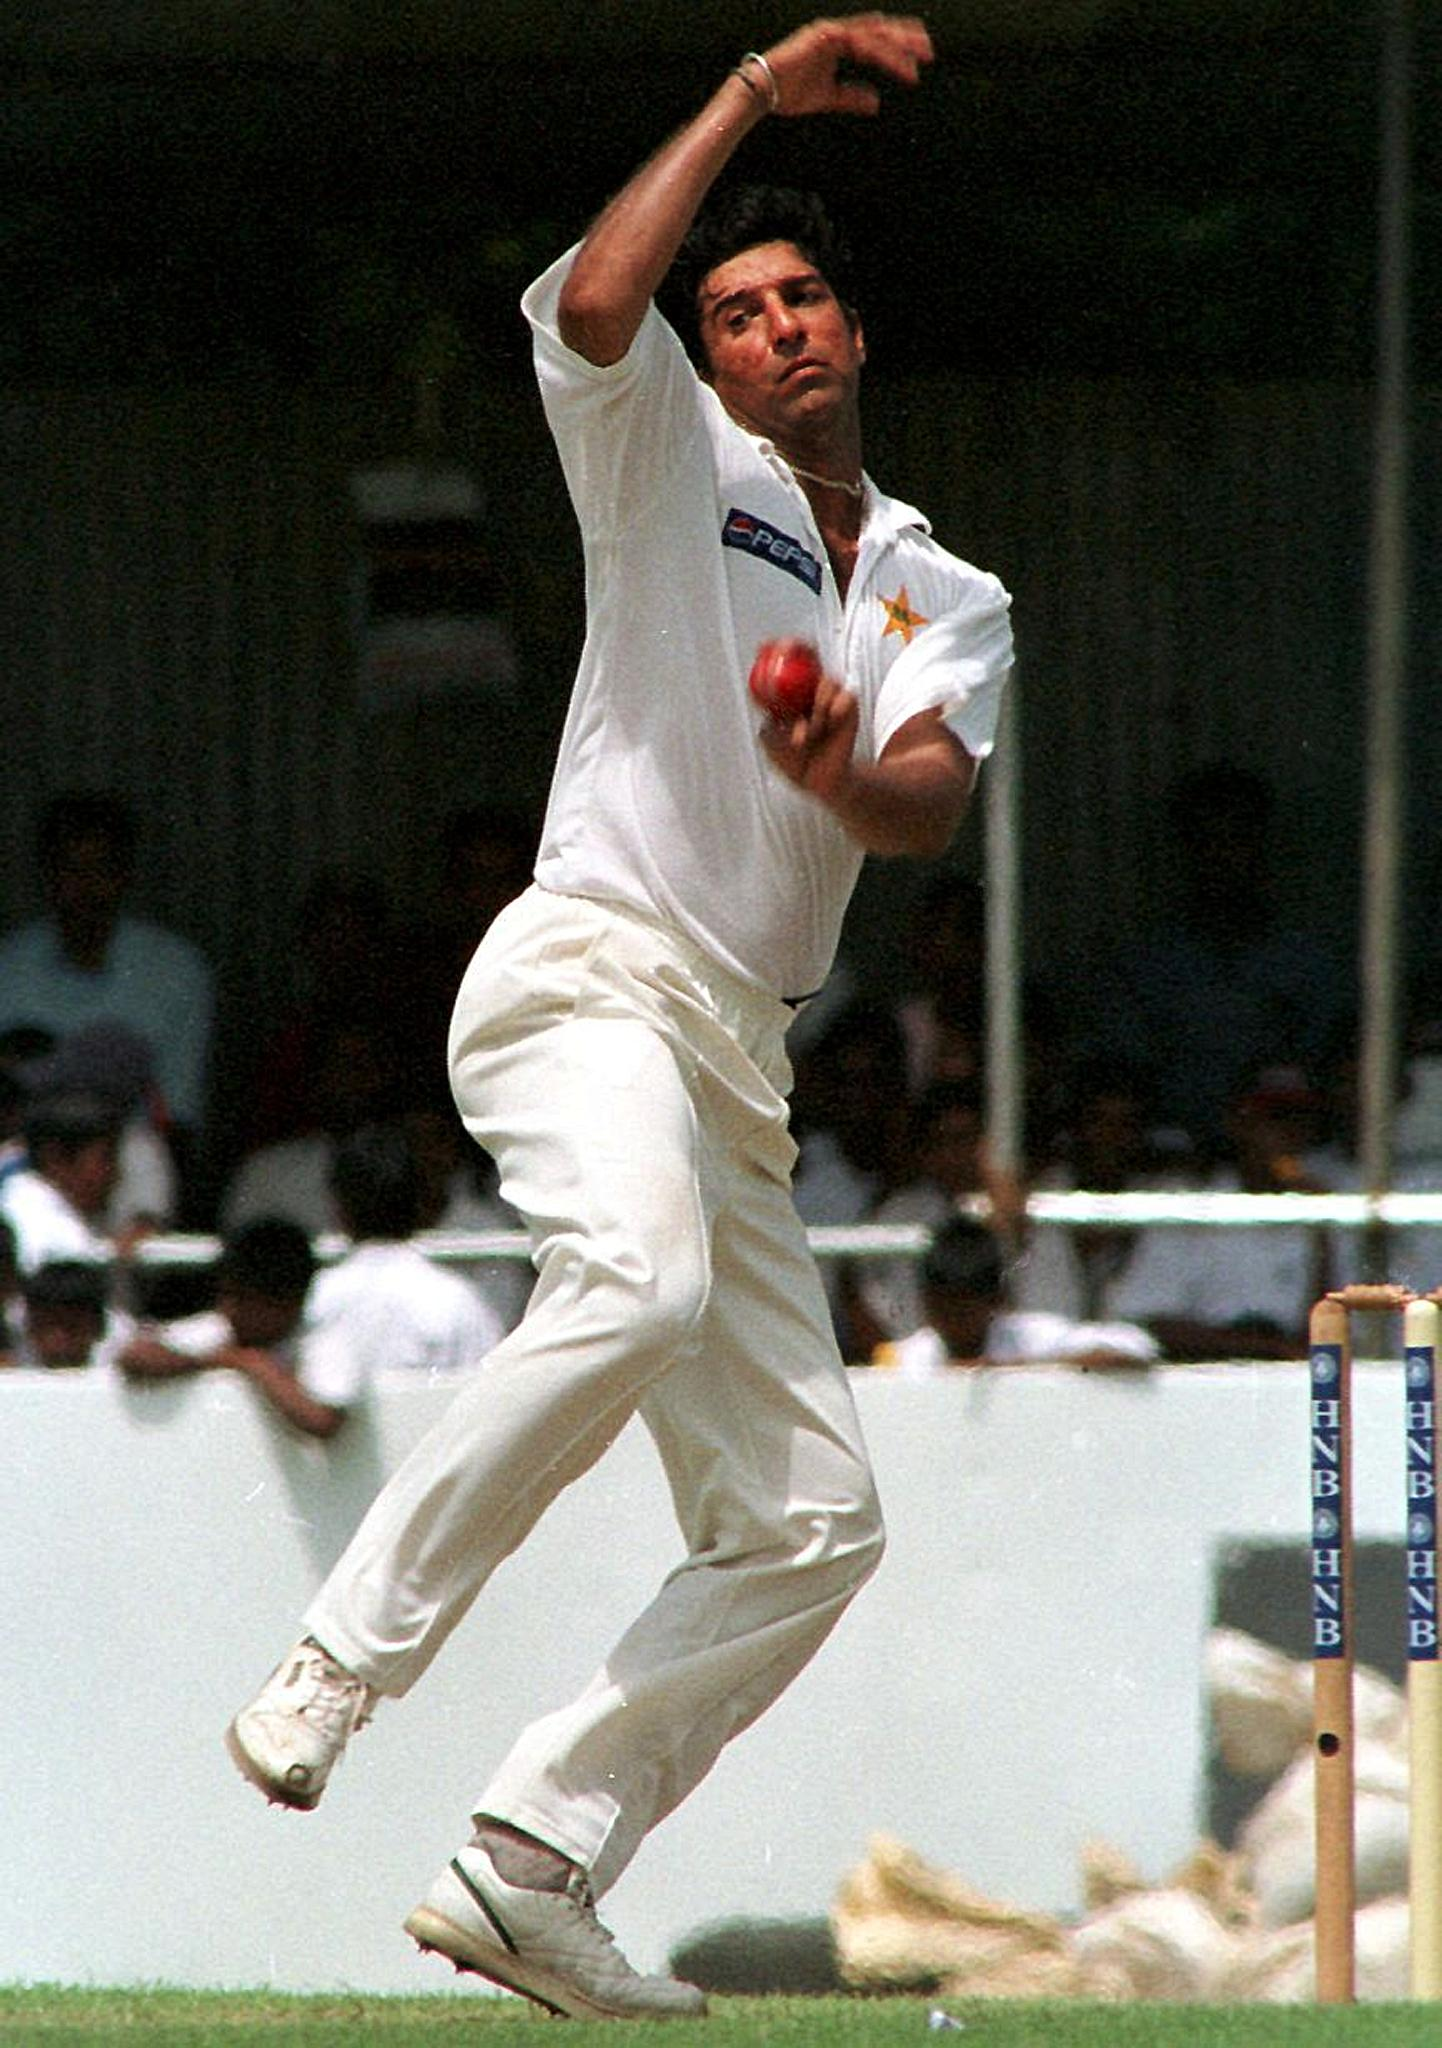 Pakistani fast bowler Wasim Akram winds up in a test match against Sri Lanka